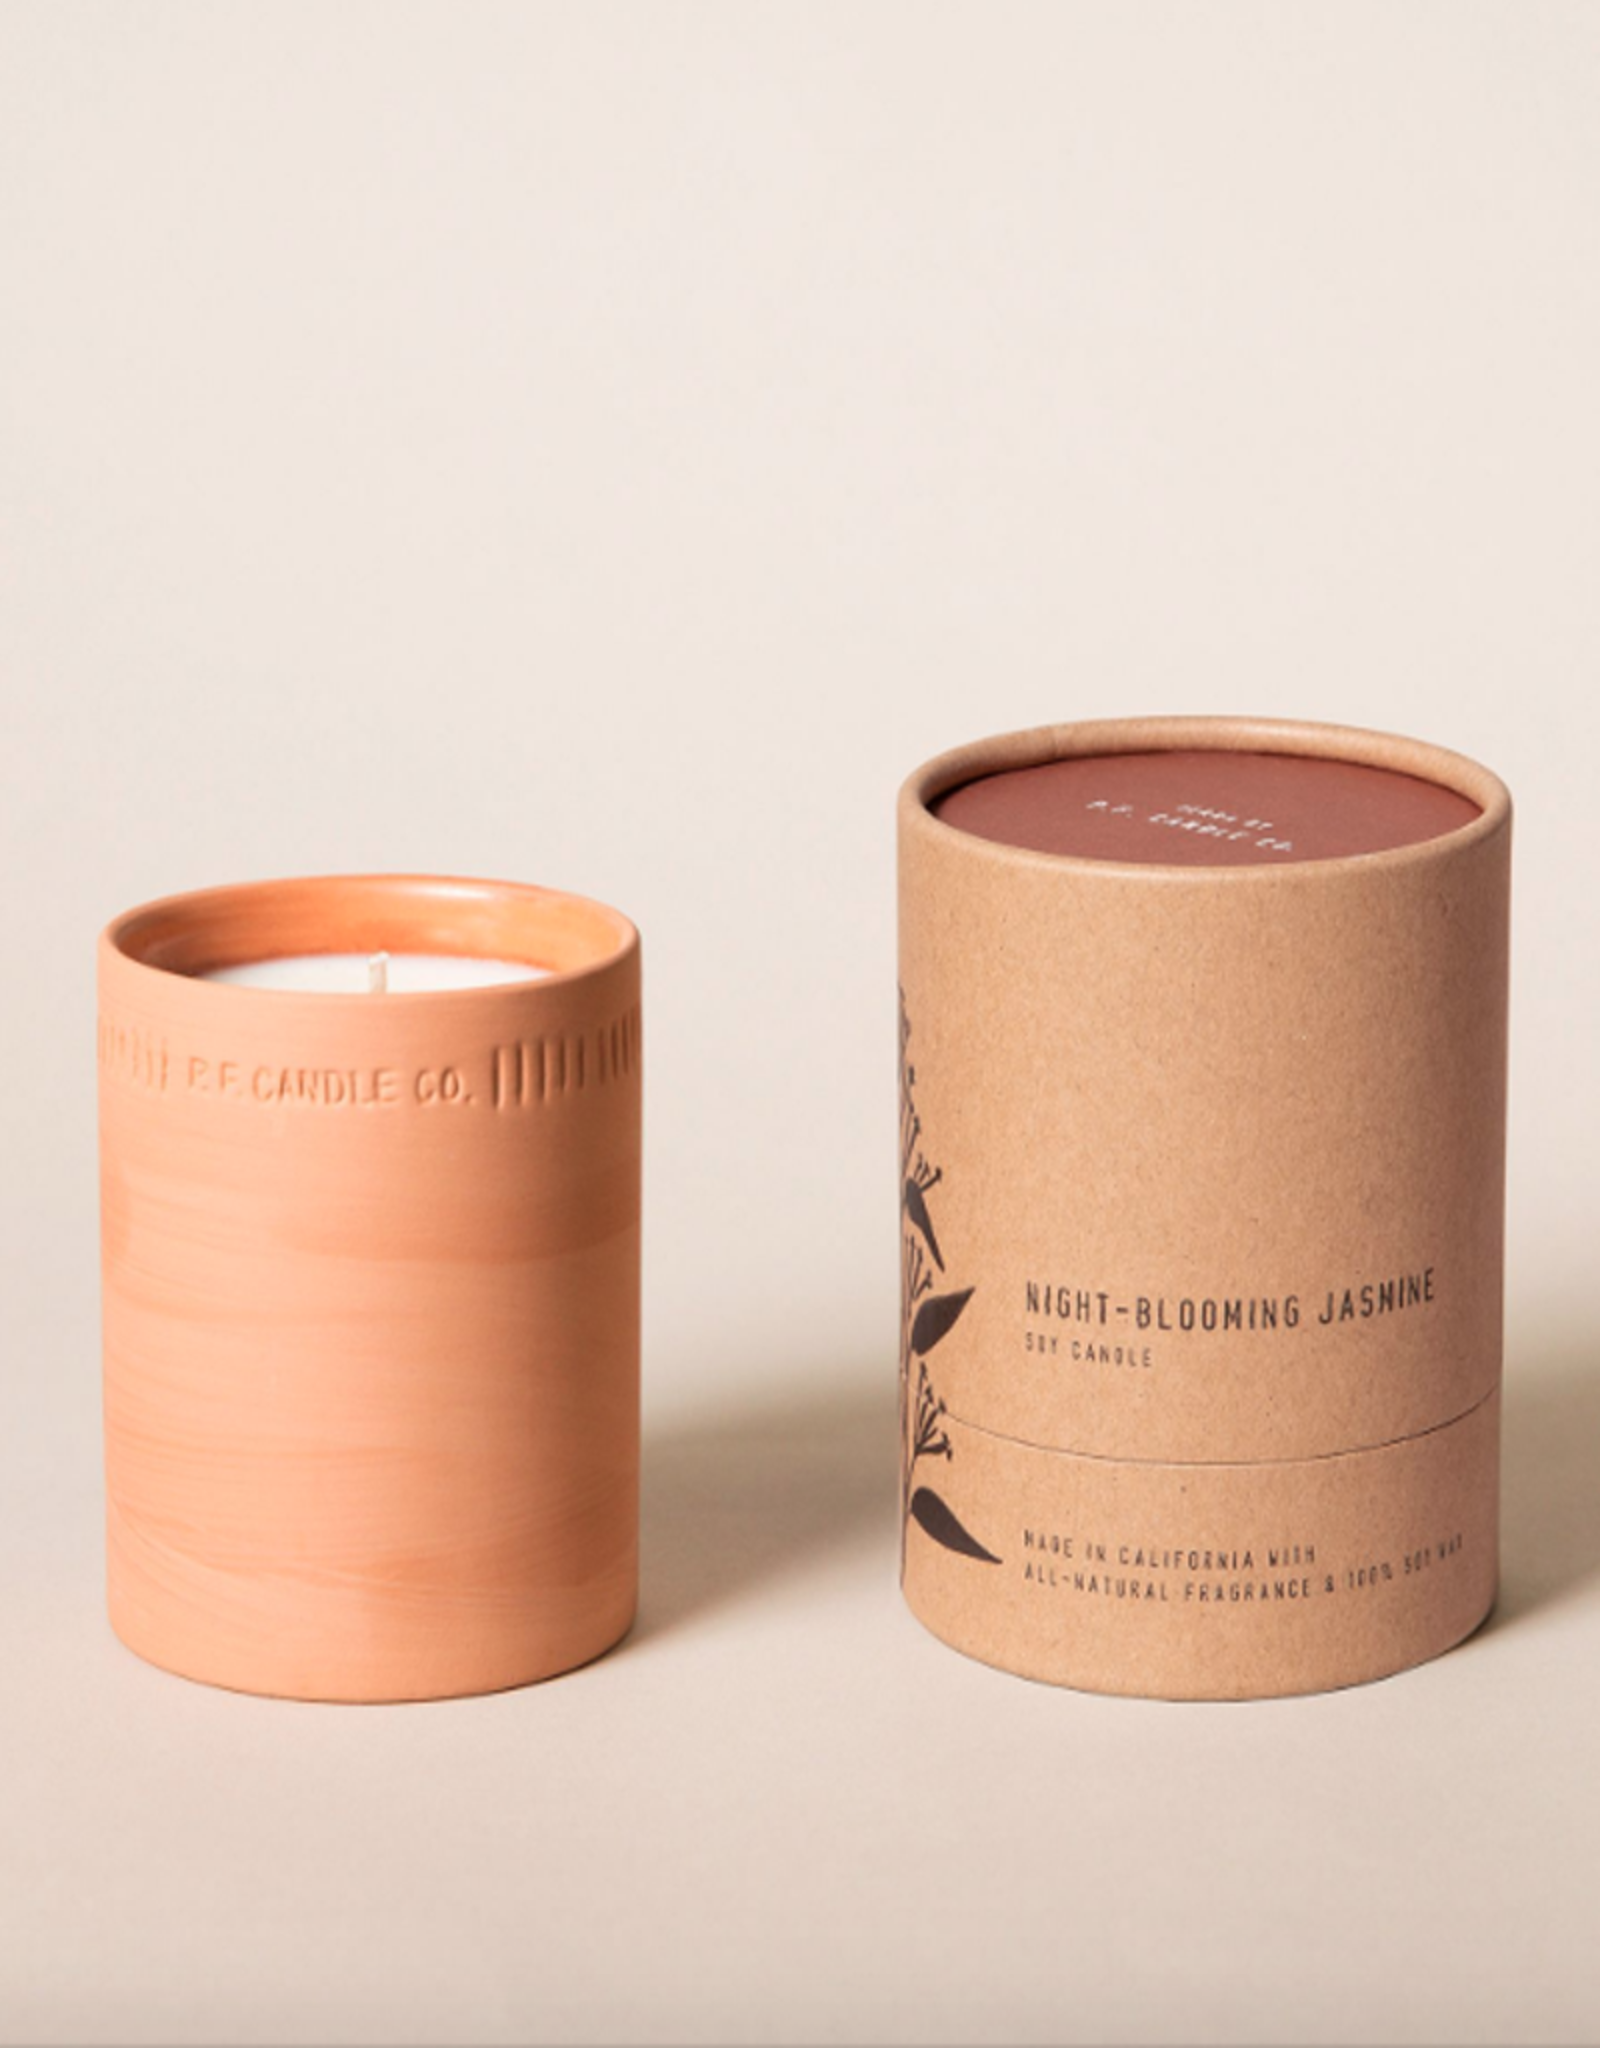 P.F Candle Co. Terra Candle